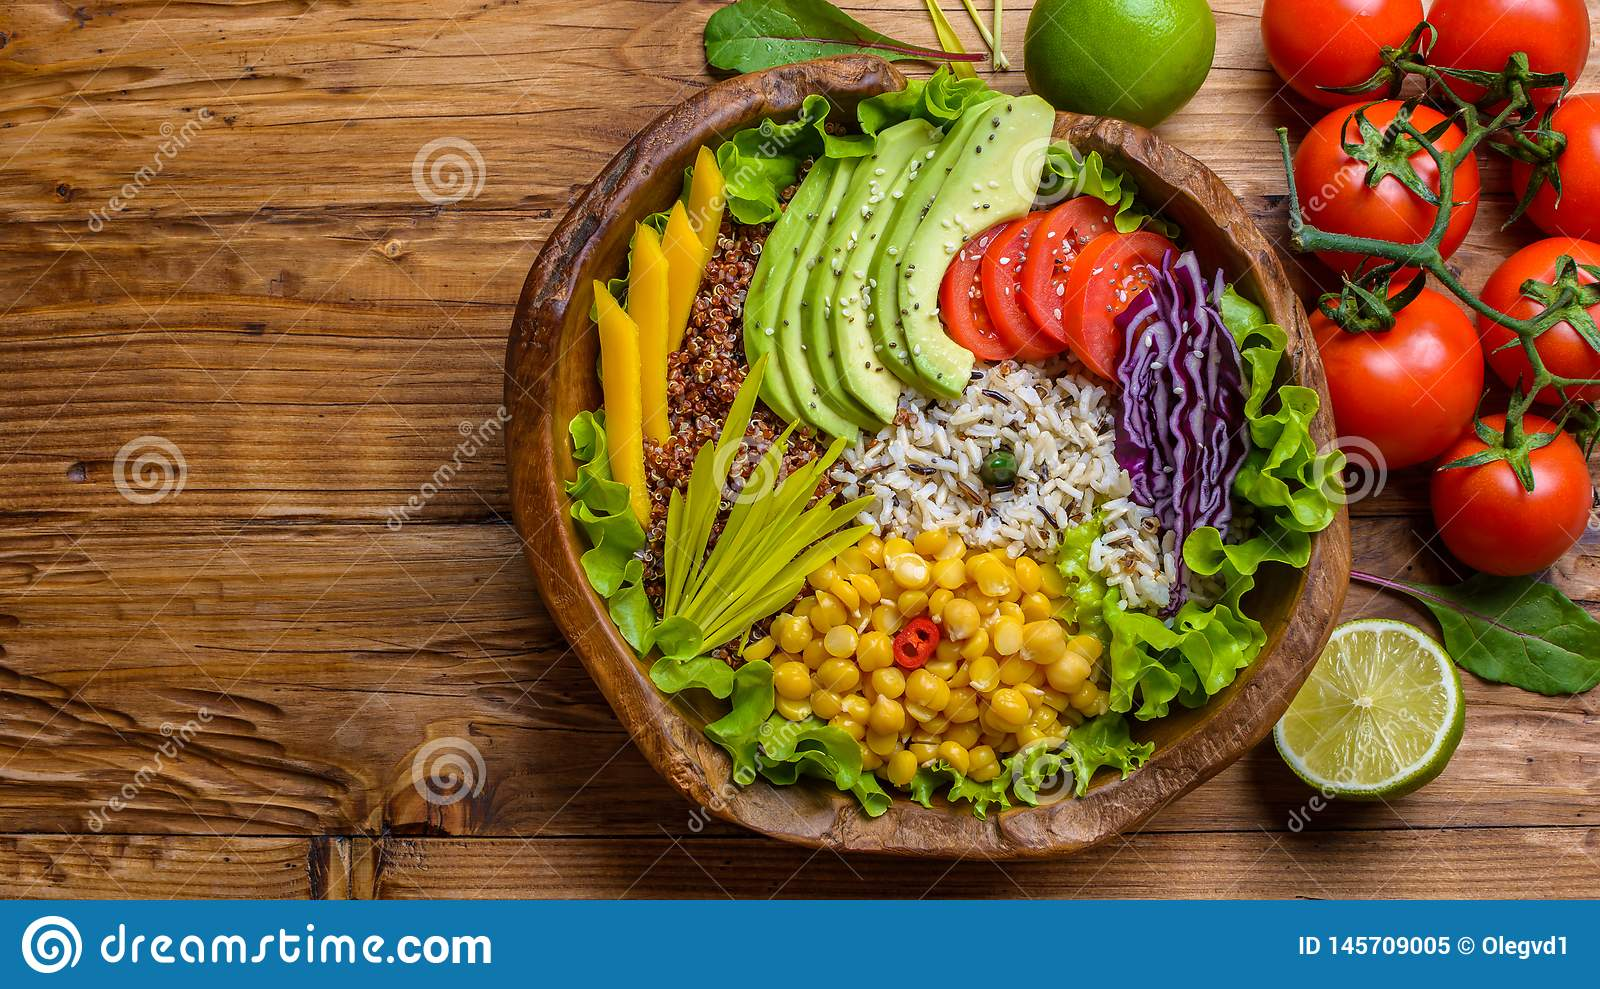 Buddha bowl with chickpea, avocado, wild rice, quinoa seeds, bell pepper, tomatoes, greens, cabbage, lettuce on old wooden table.